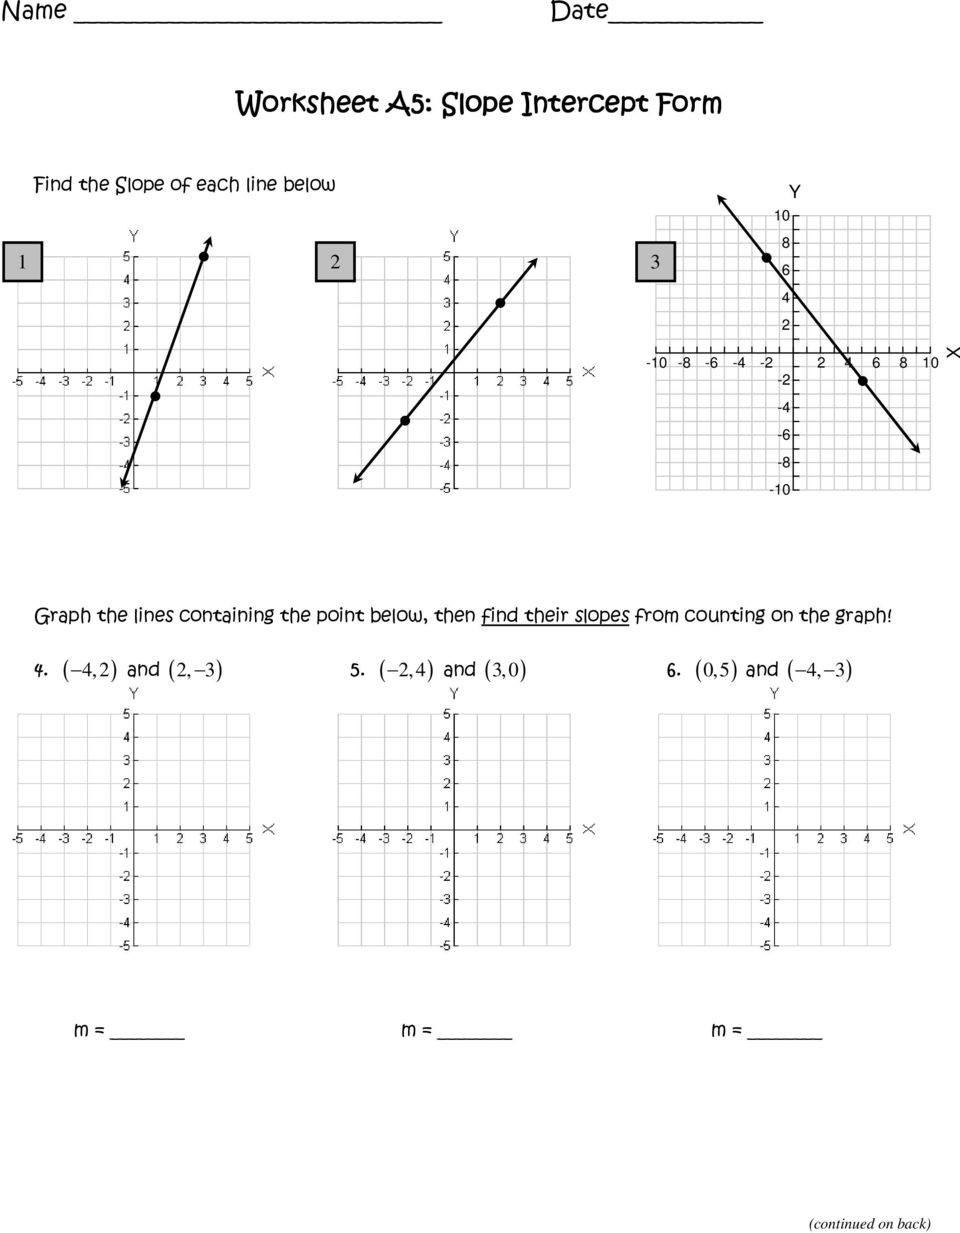 Worksheets Graphing Slope Intercept Form Worksheet worksheet a5 slope intercept form pdf point below then find their slopes from counting on the graph